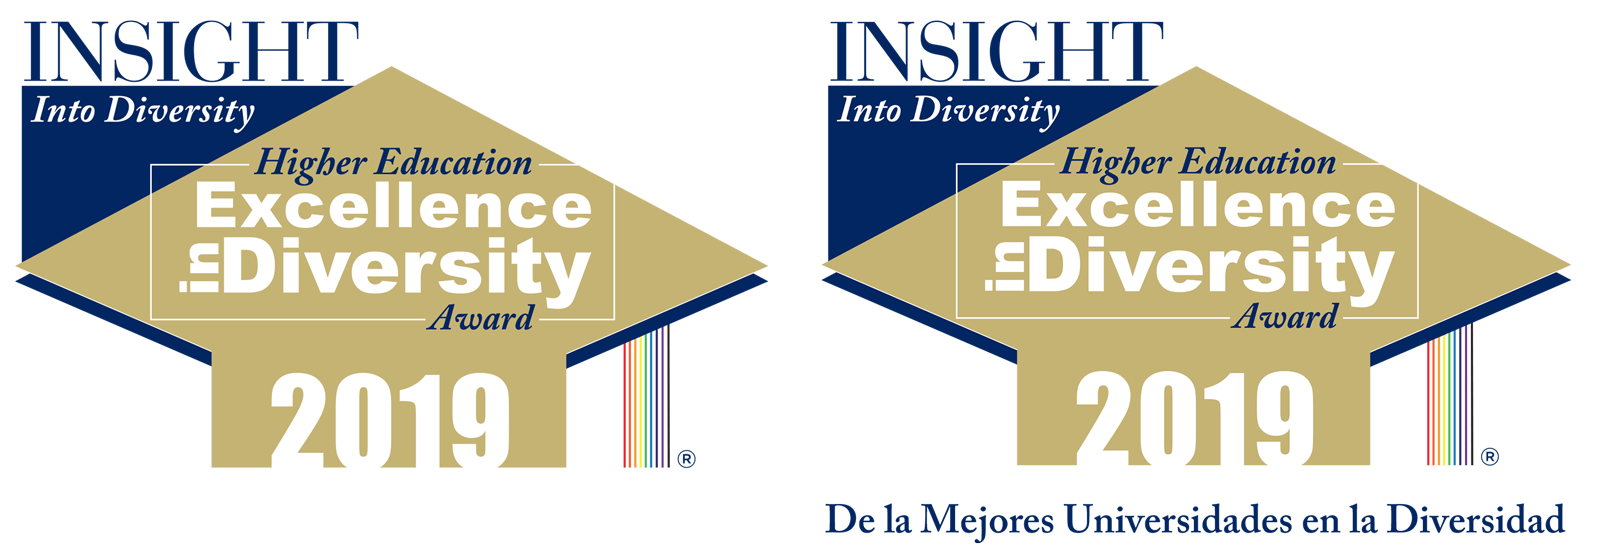 Insight into Diversity award badges